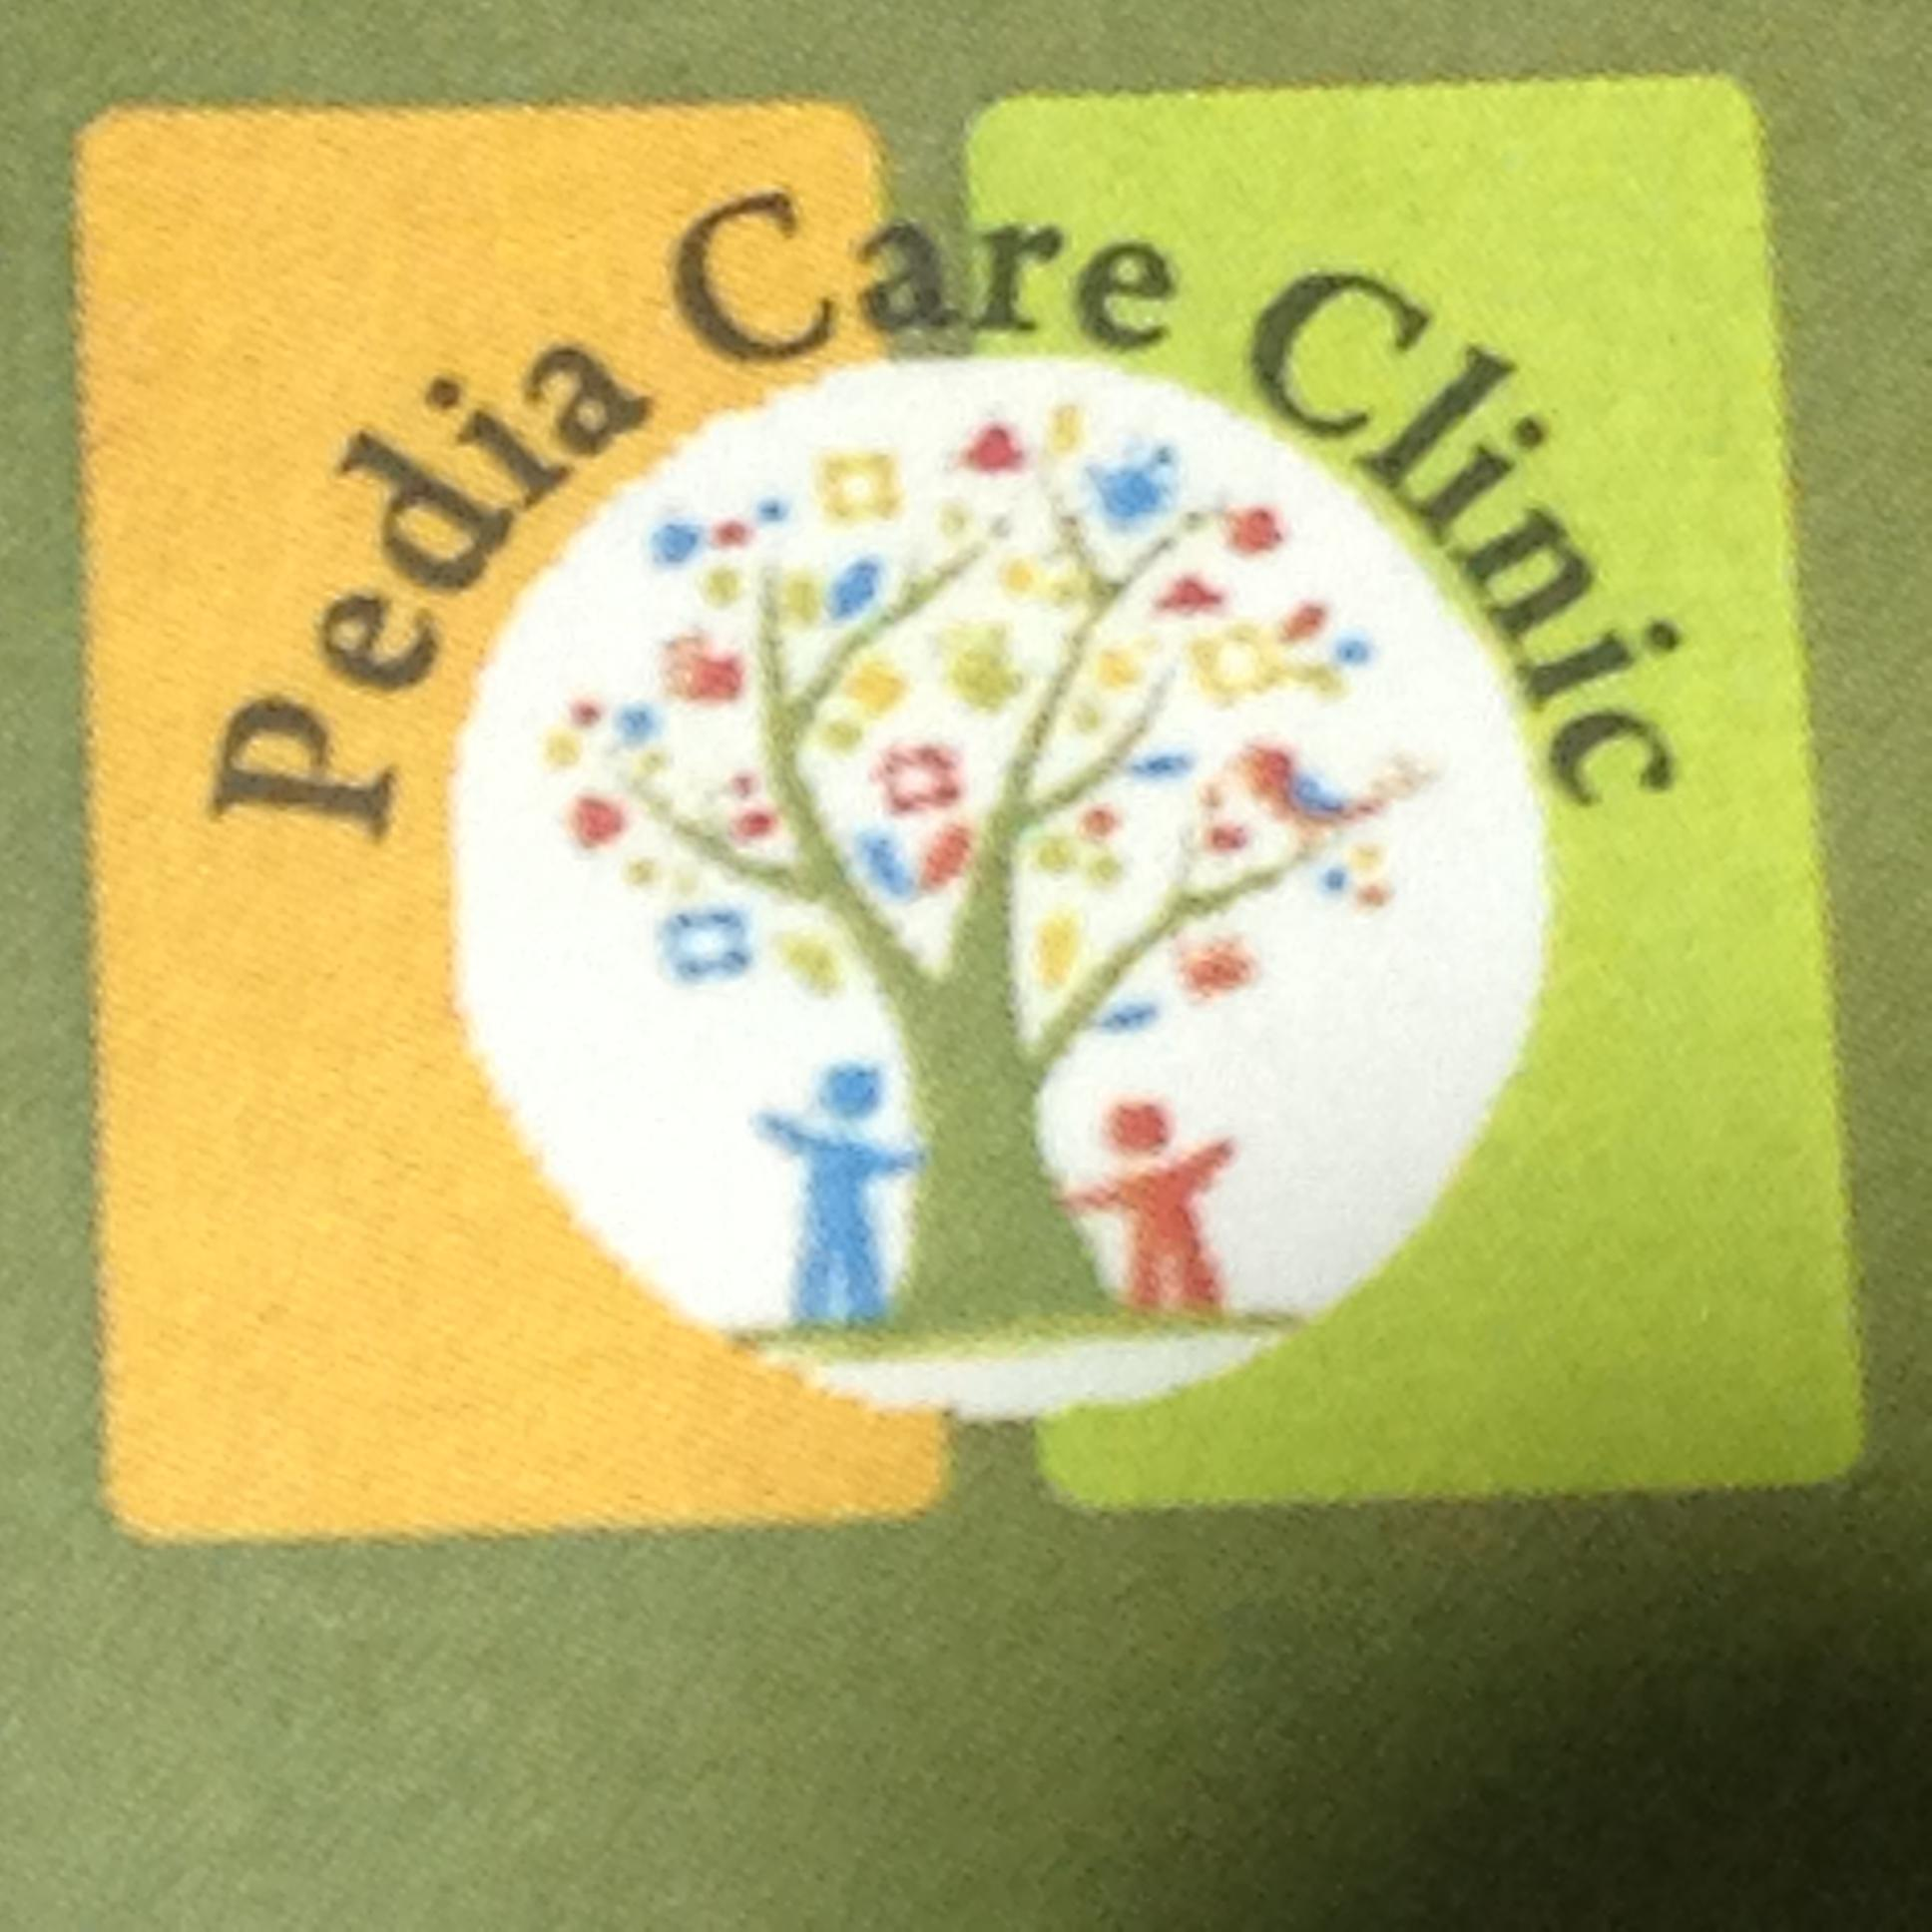 Pedia Care Clinic